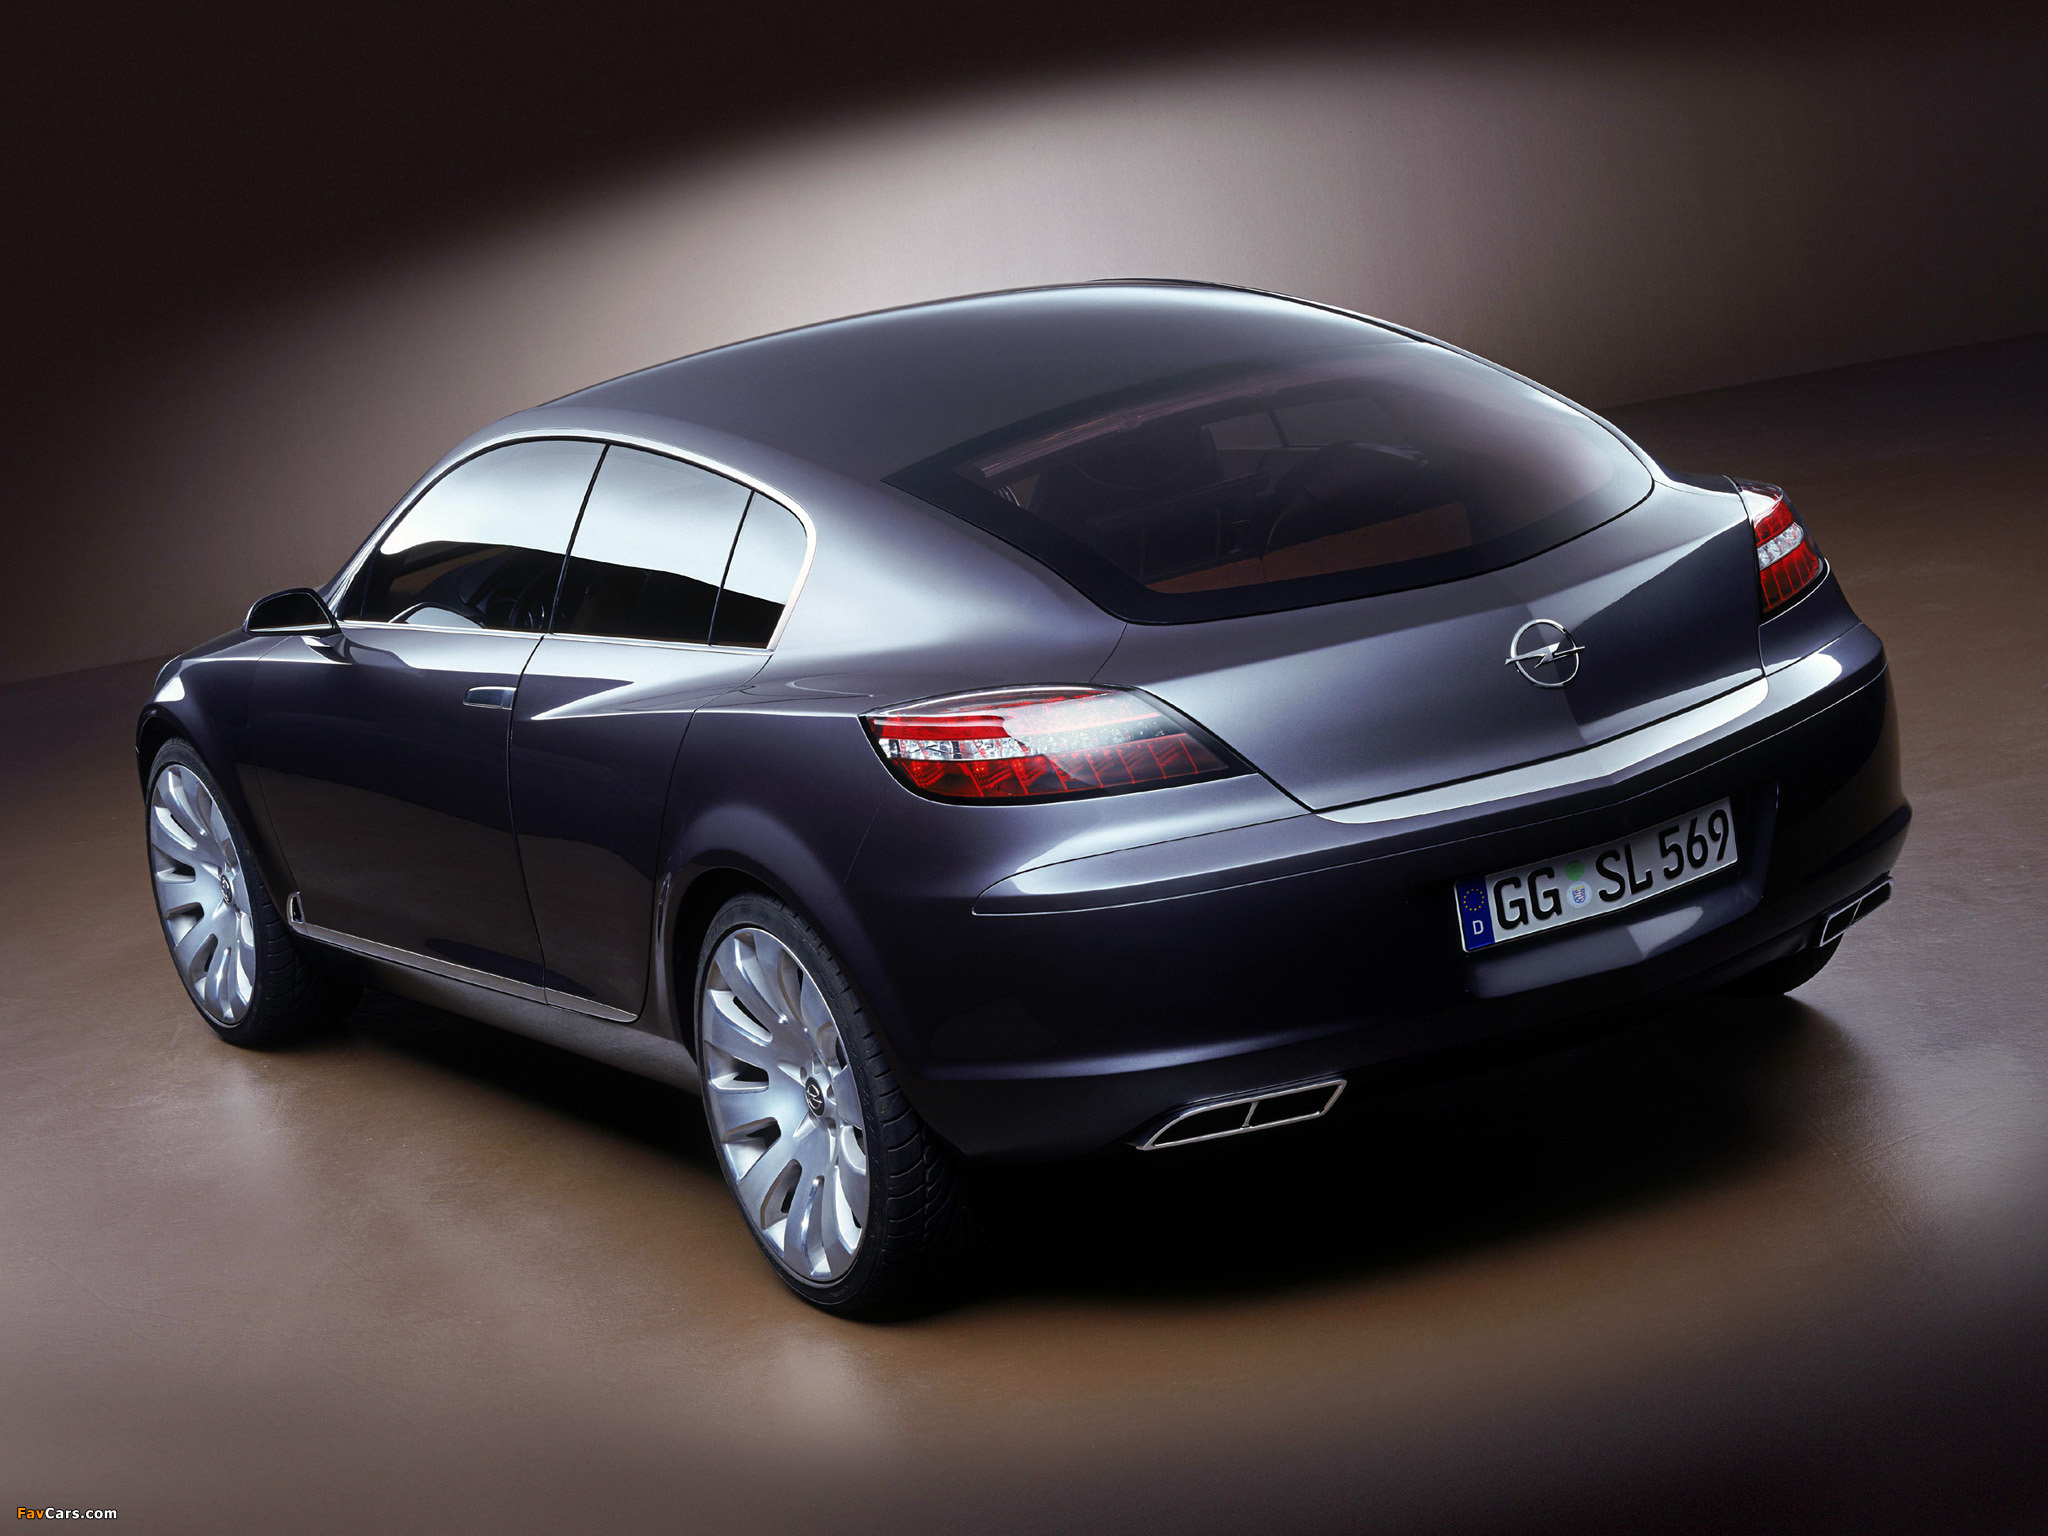 Opel Insignia Concept 2003 wallpapers (2048 x 1536)